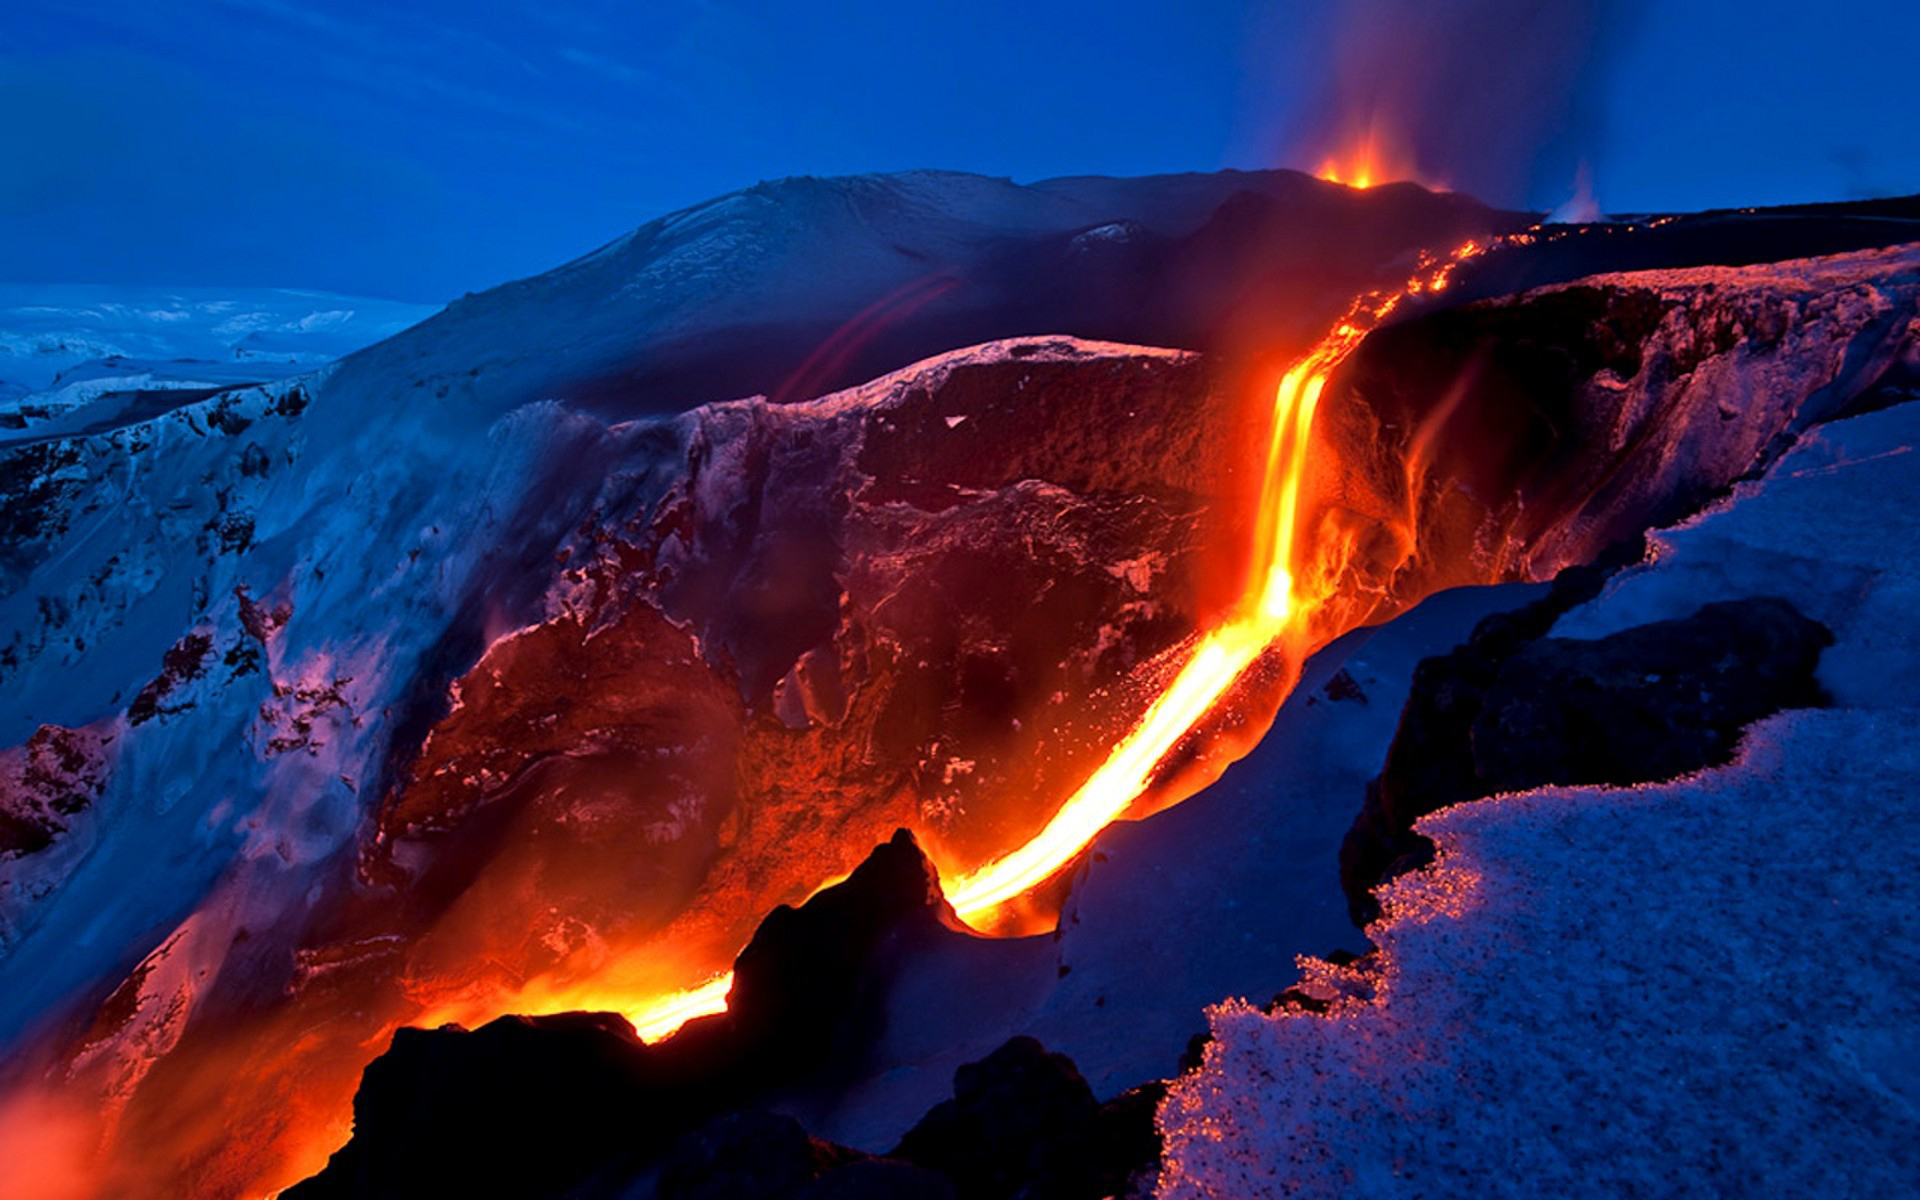 Wallpaper Abyss Explore the Collection Volcanoes Earth Volcano 300846 1920x1200